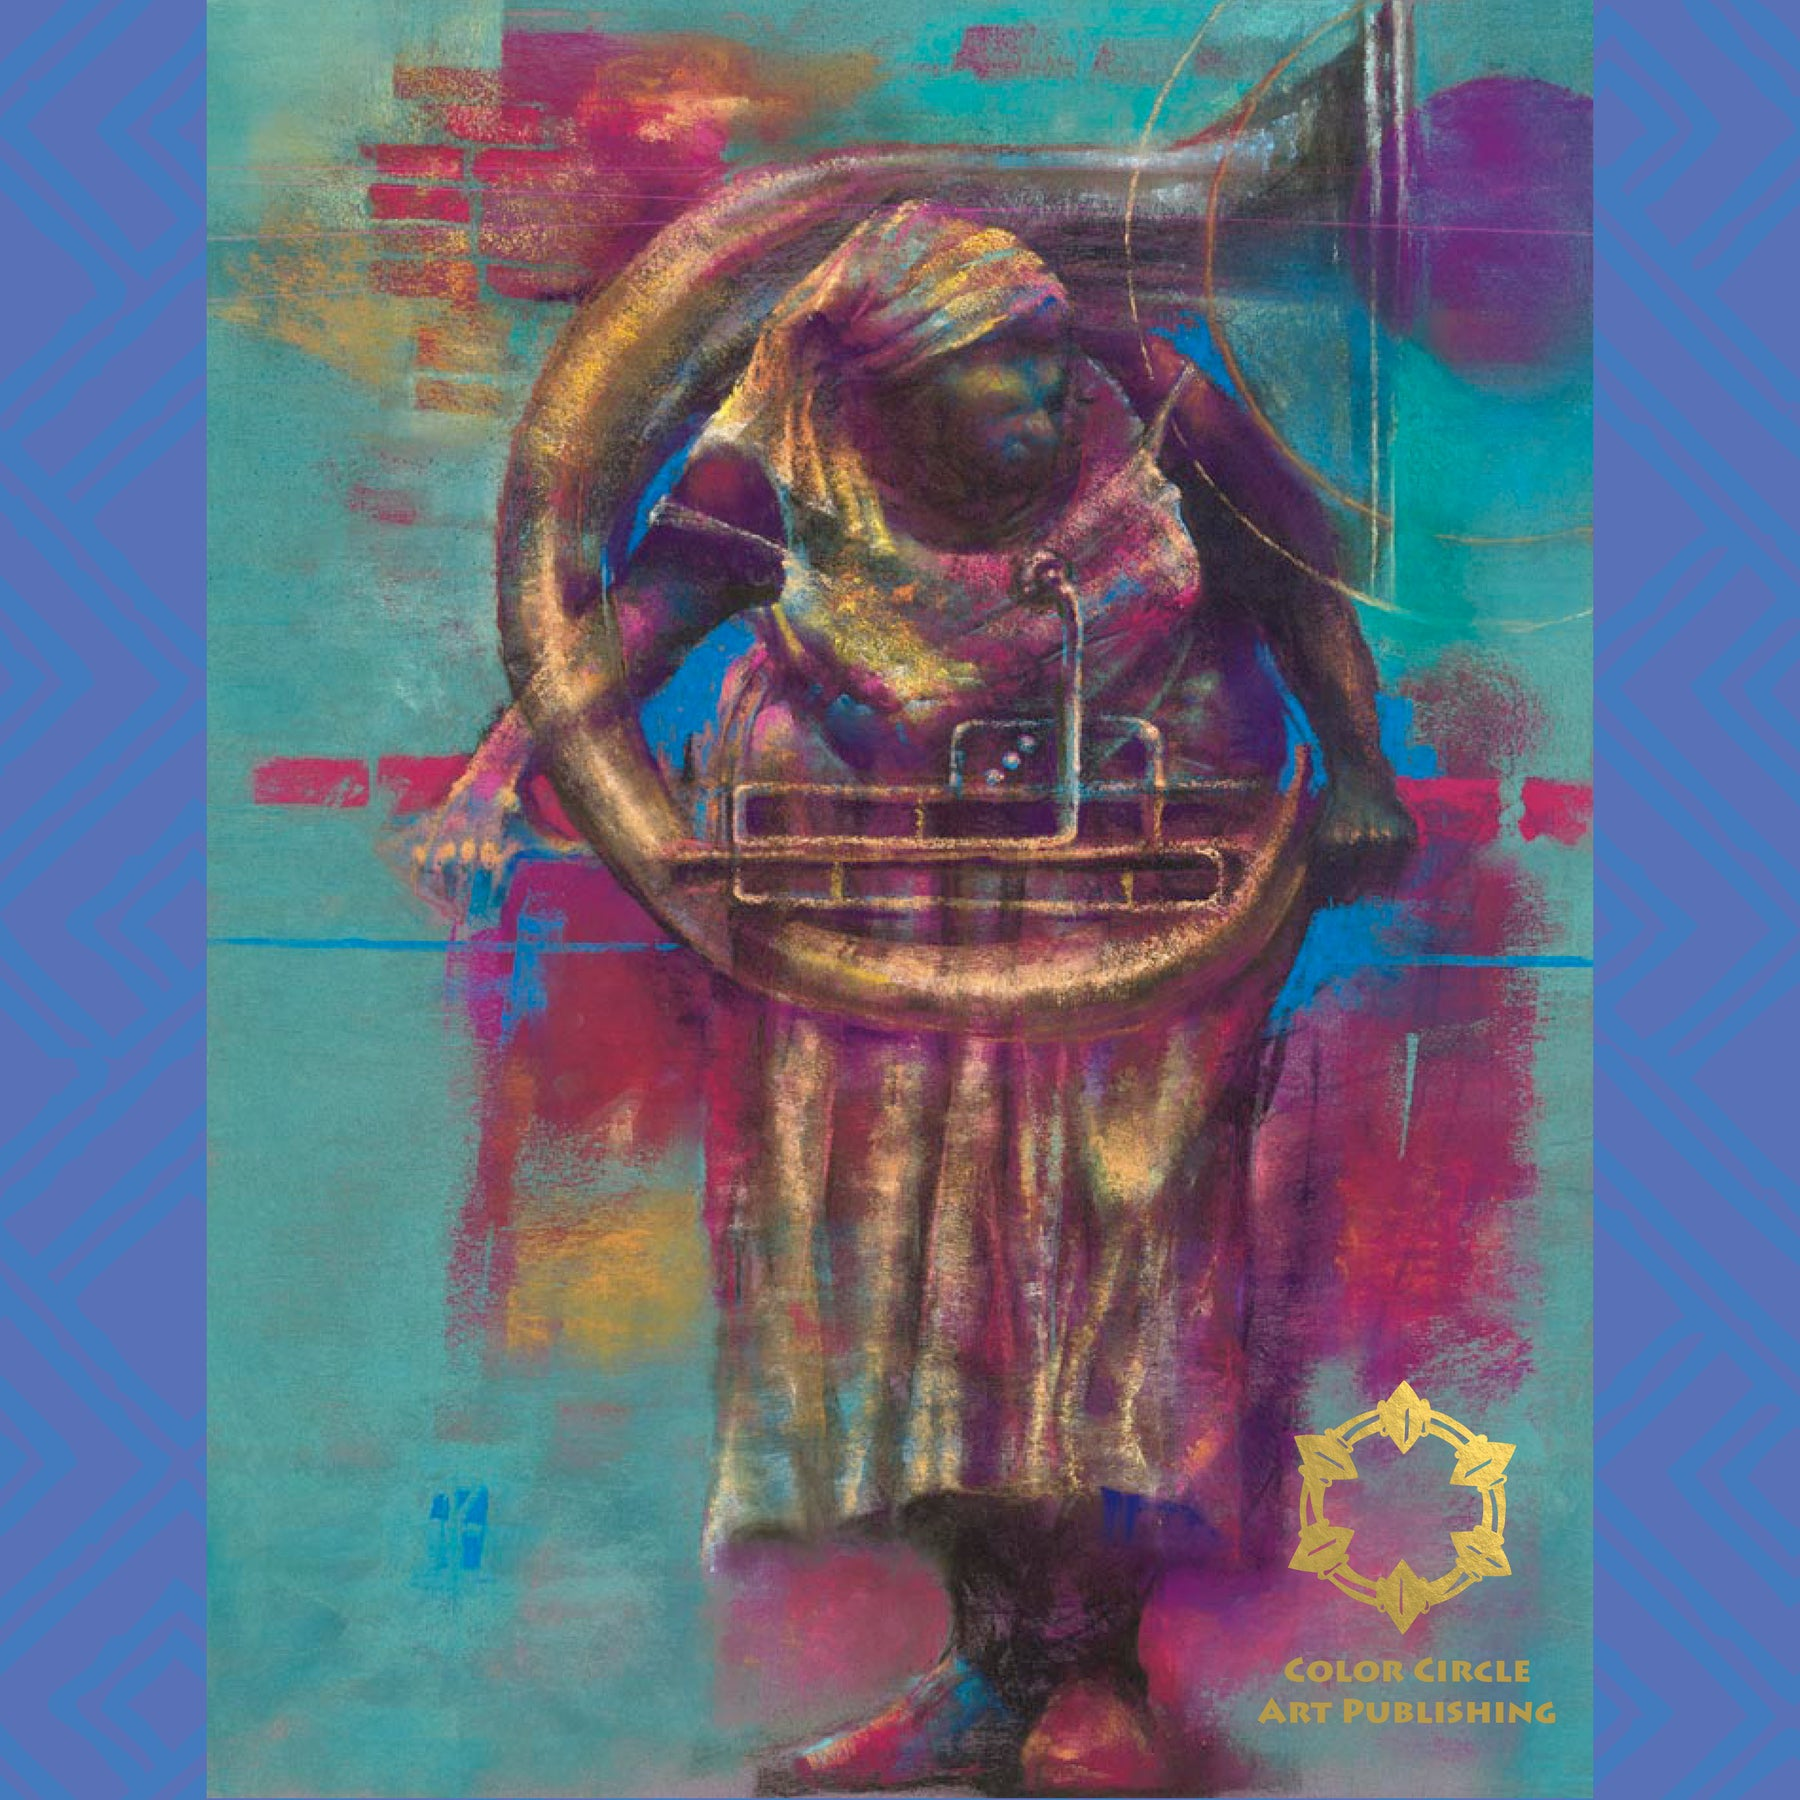 Color circle art publishing -  Tuba By Paul Goodnight